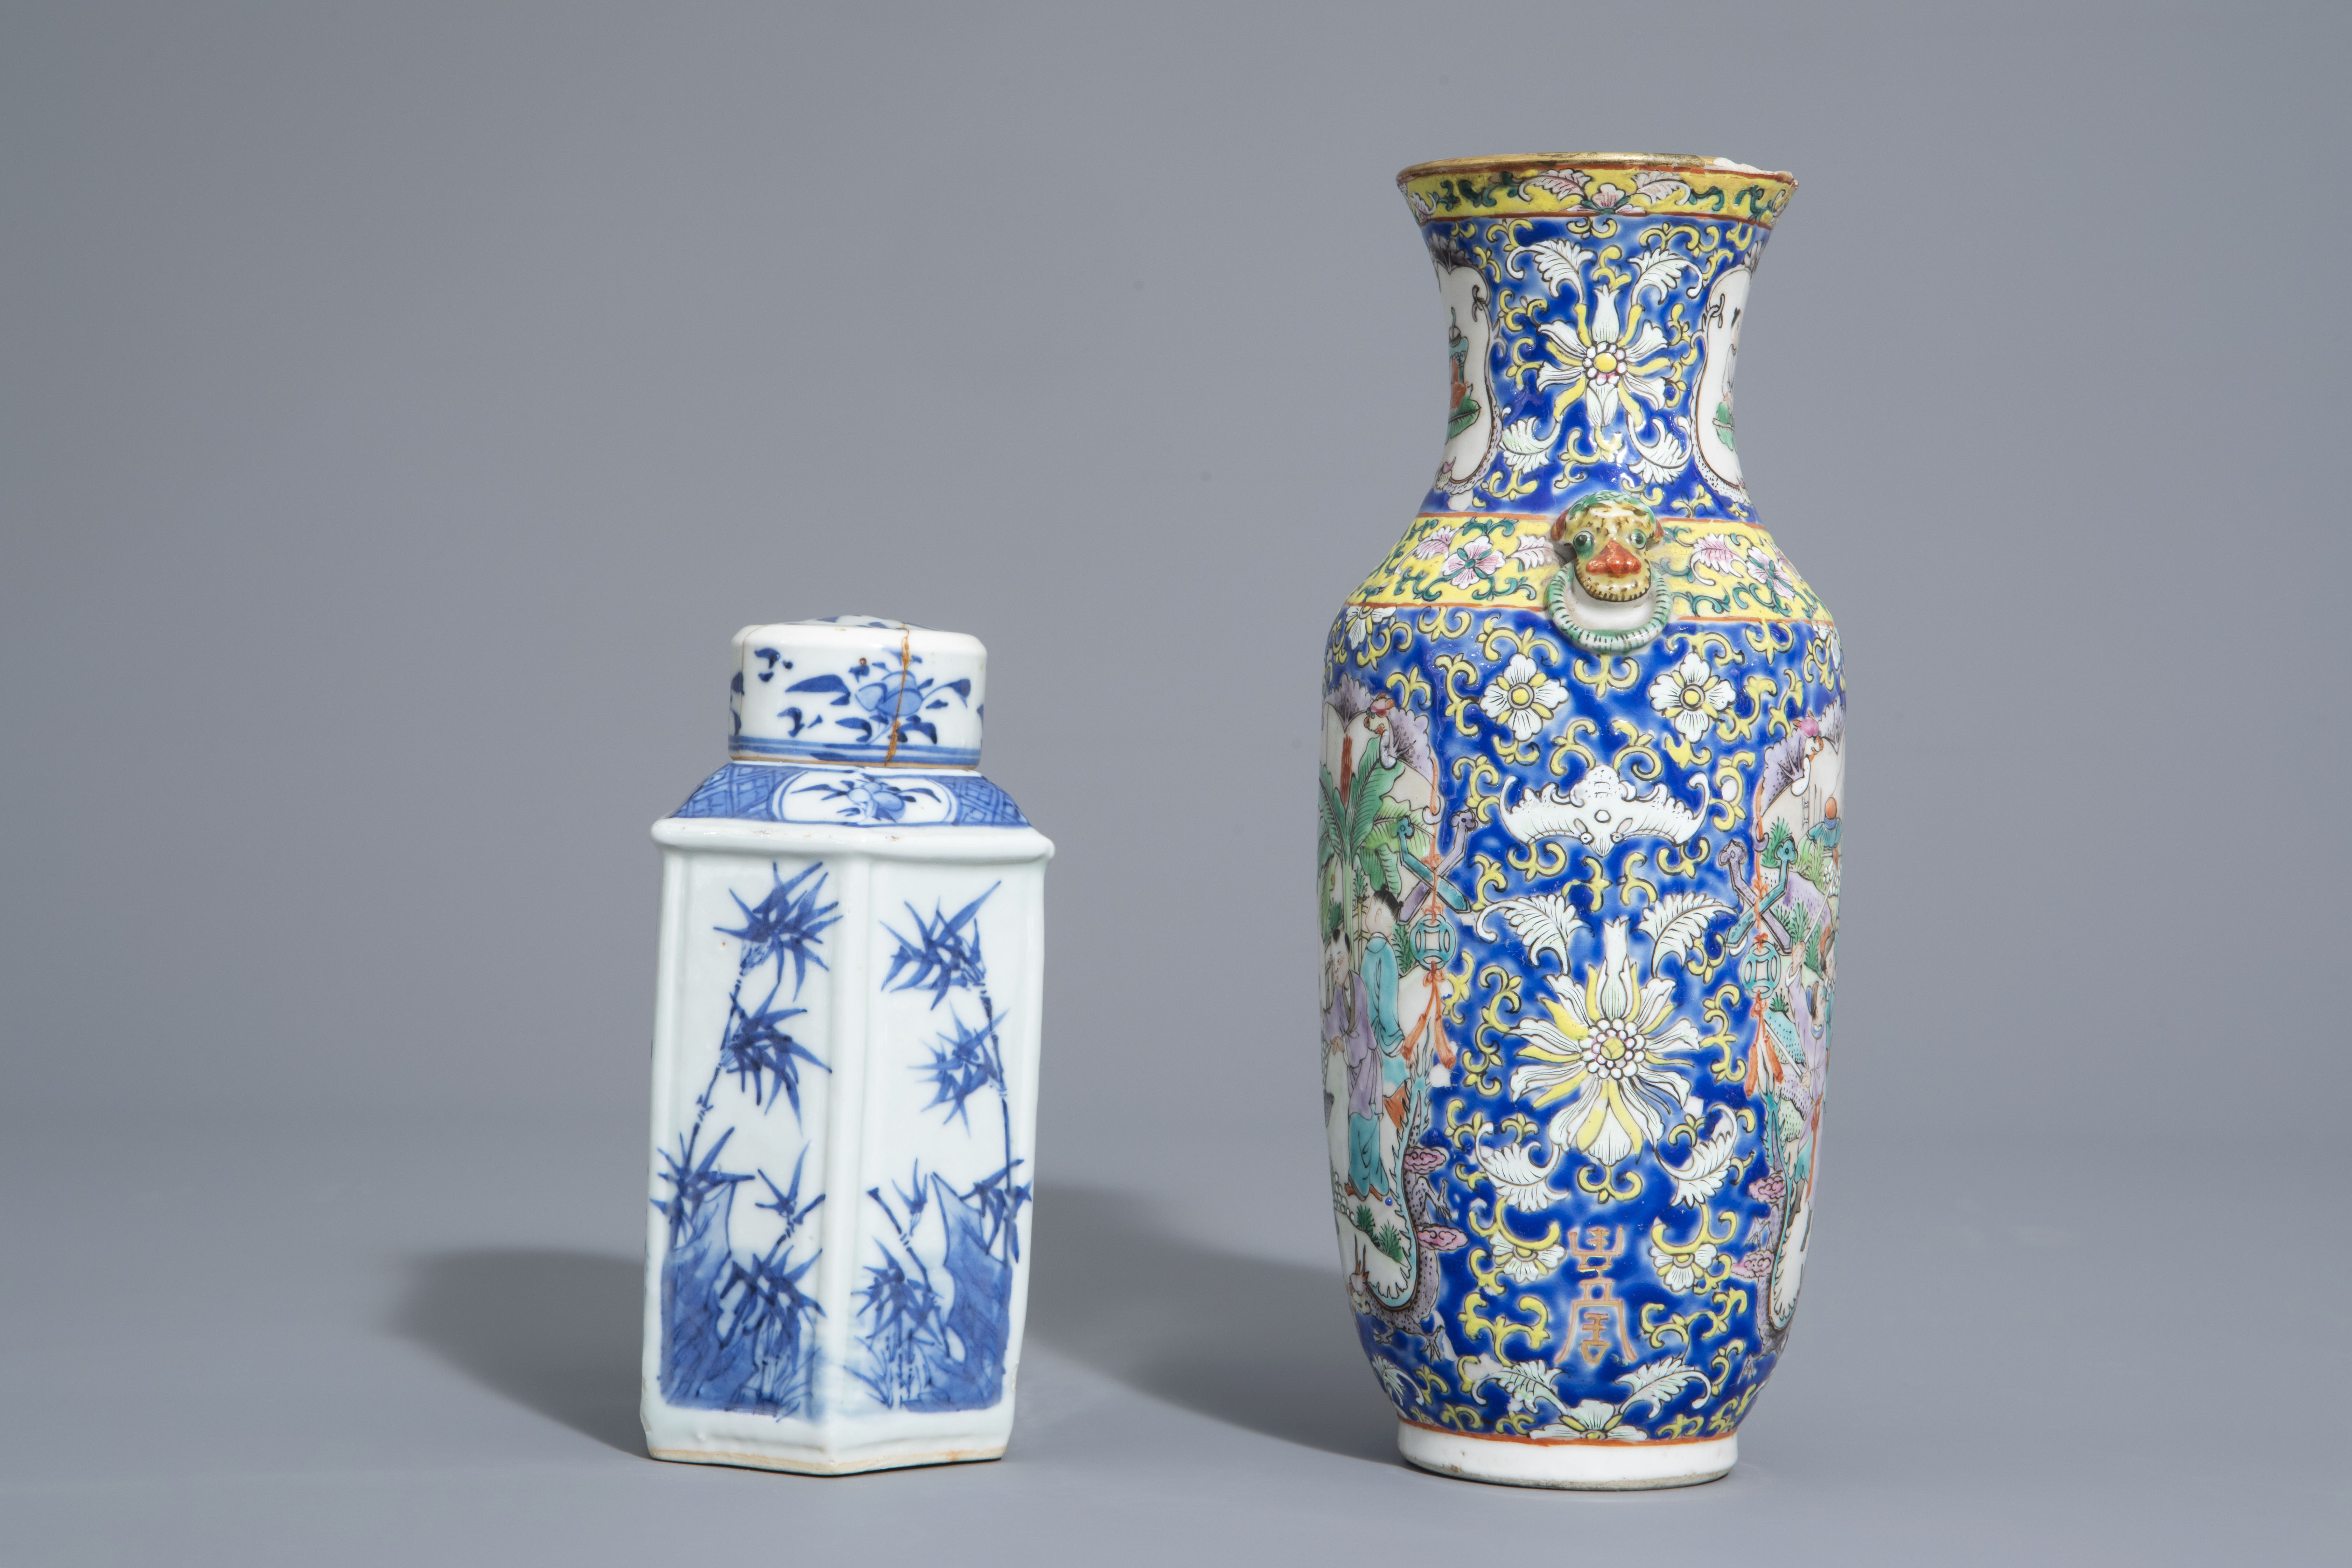 A varied collection of Chinese blue and white and famille rose porcelain, 19th/20th C. - Image 3 of 15